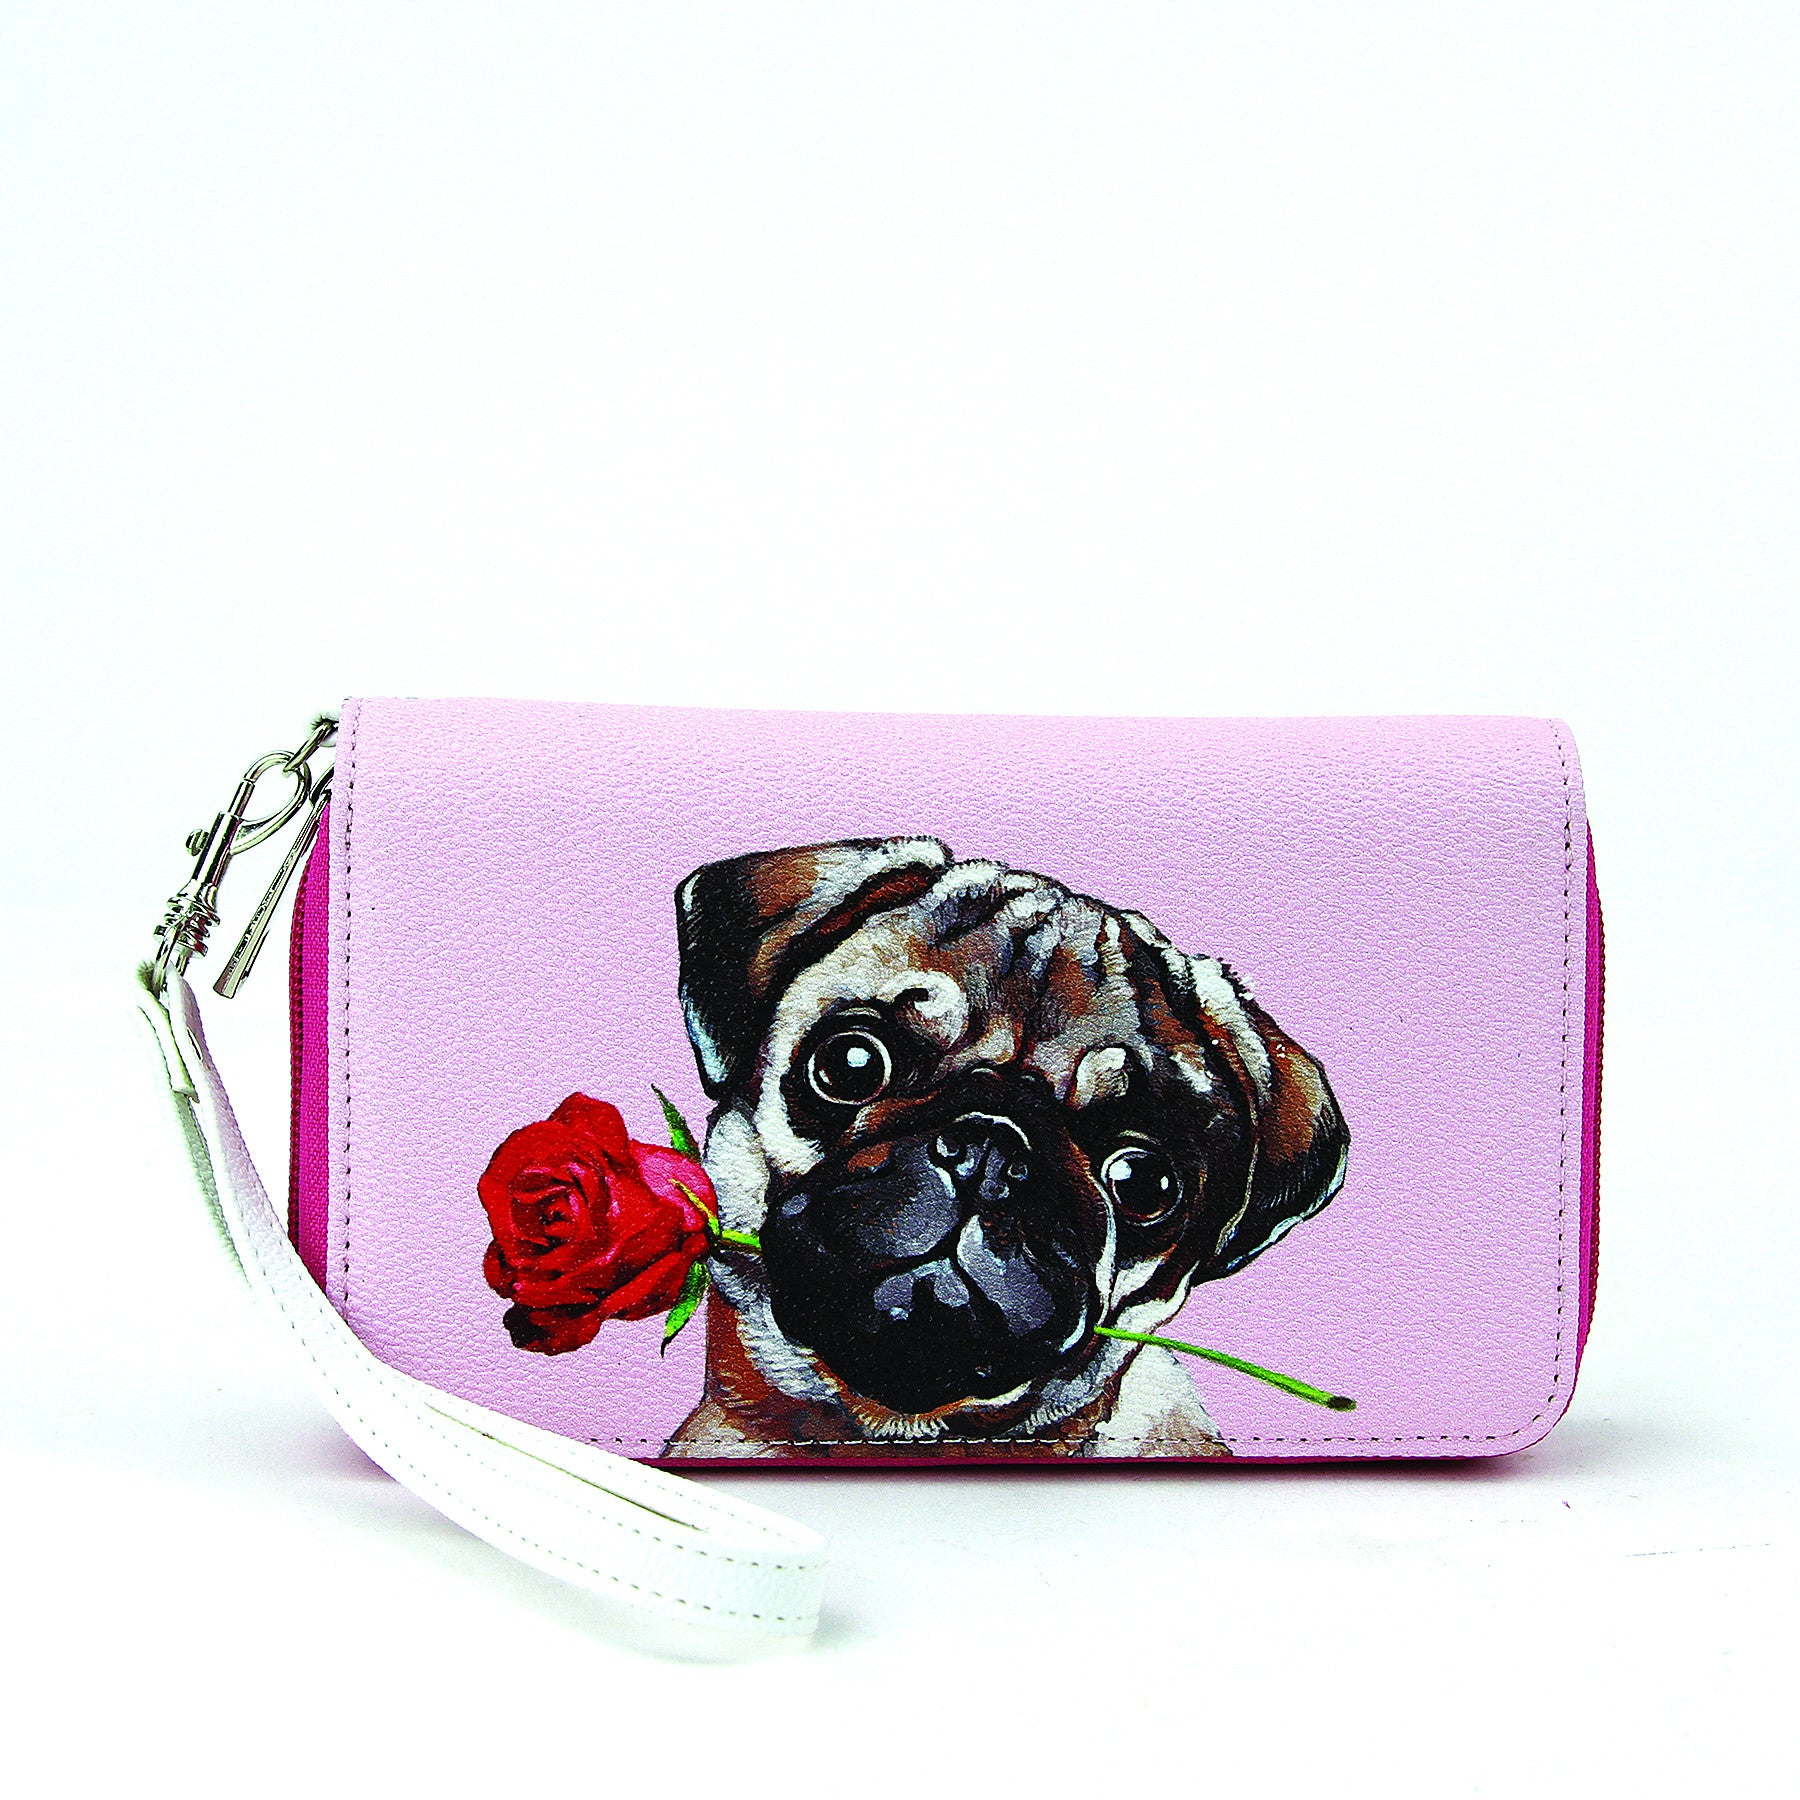 Pug with rose in mouth wallet